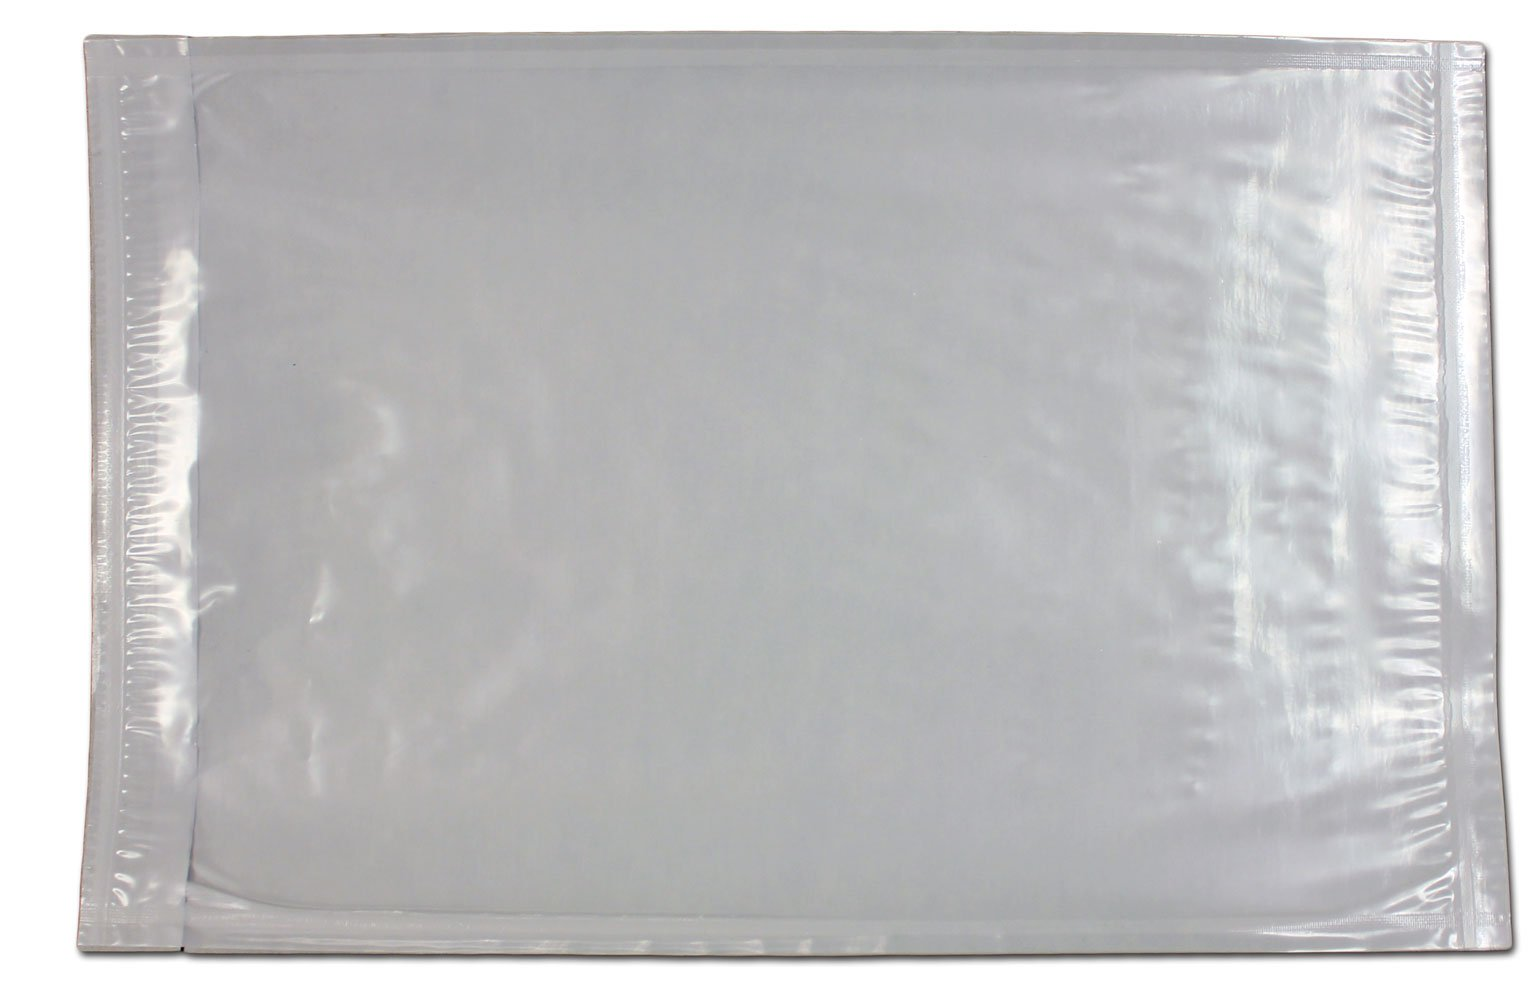 6'' x 9'' Clear Plastic Adhesive Packing List Mailing / Shipping Envelope Pouch - 100 Pieces